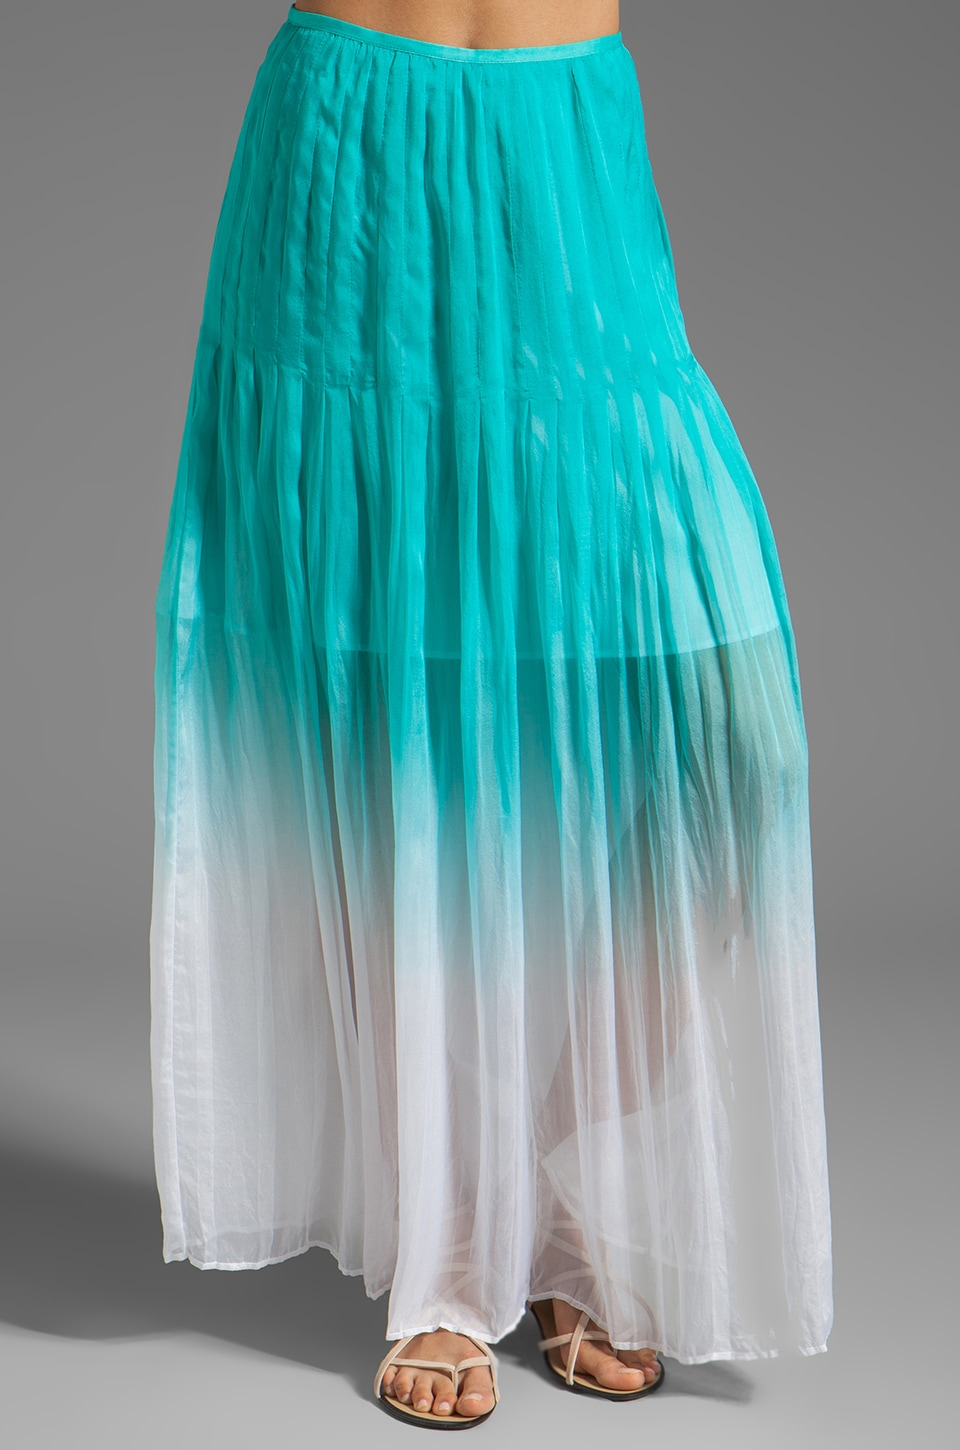 Catherine Malandrino Pleated Maxi Skirt in Appletini